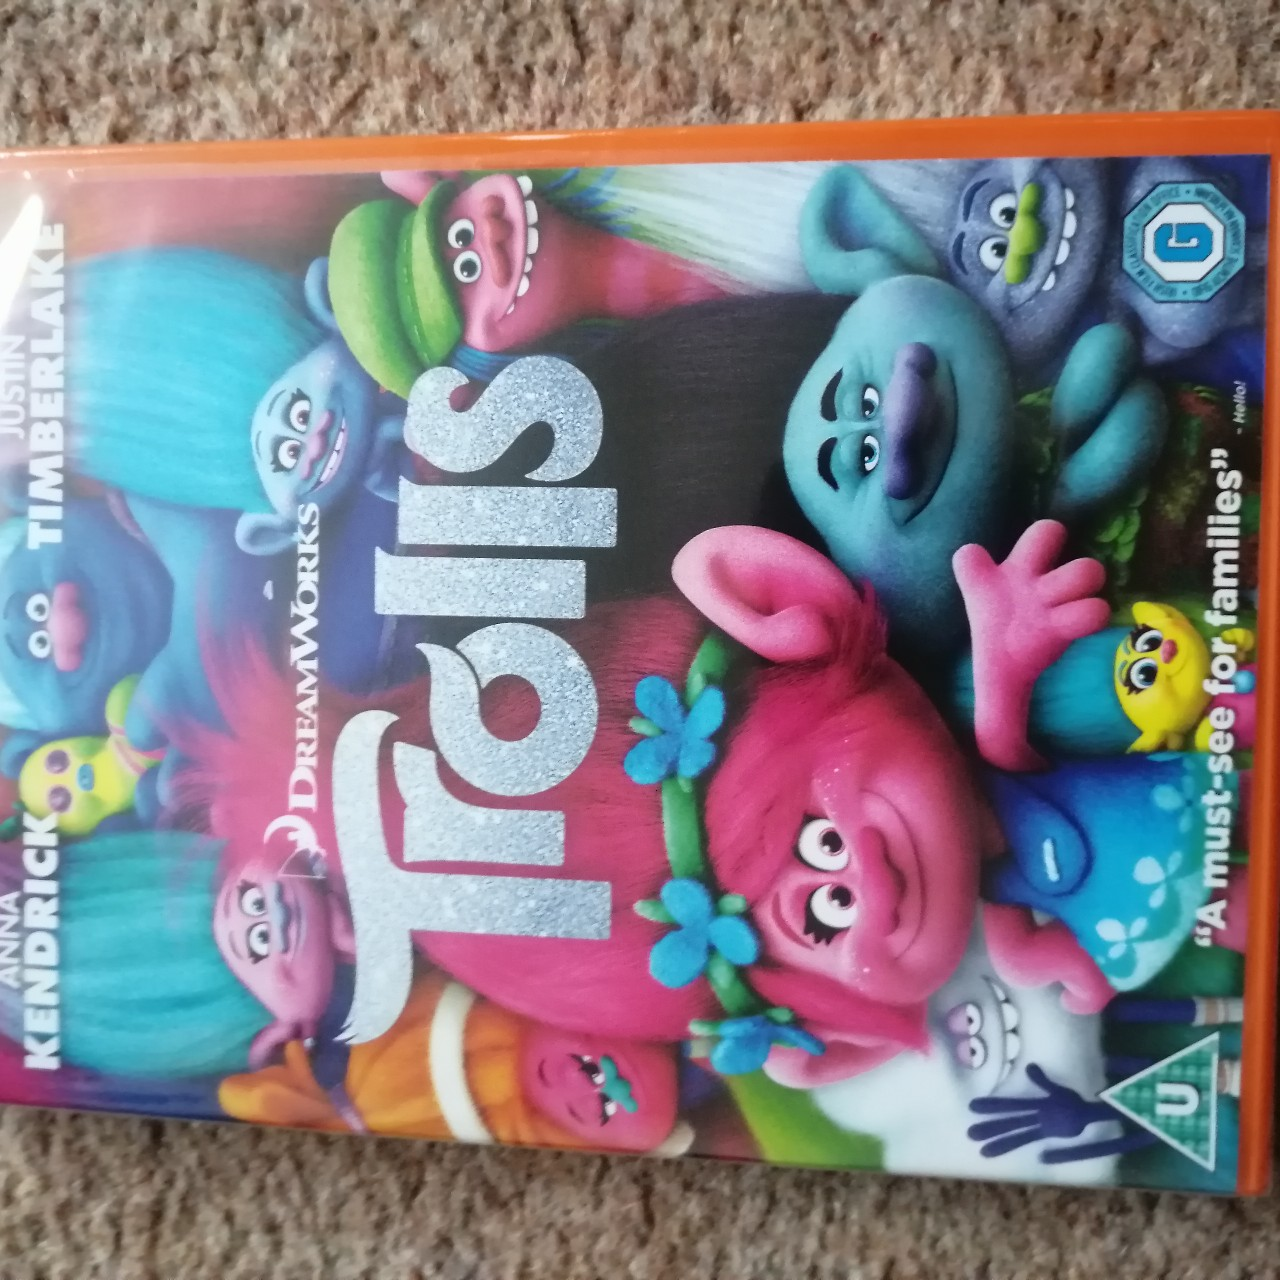 Trolls Dvd New And Sealed Price Includes First Depop Dvd trolls + trolls world tour (collection de 2 fi. depop